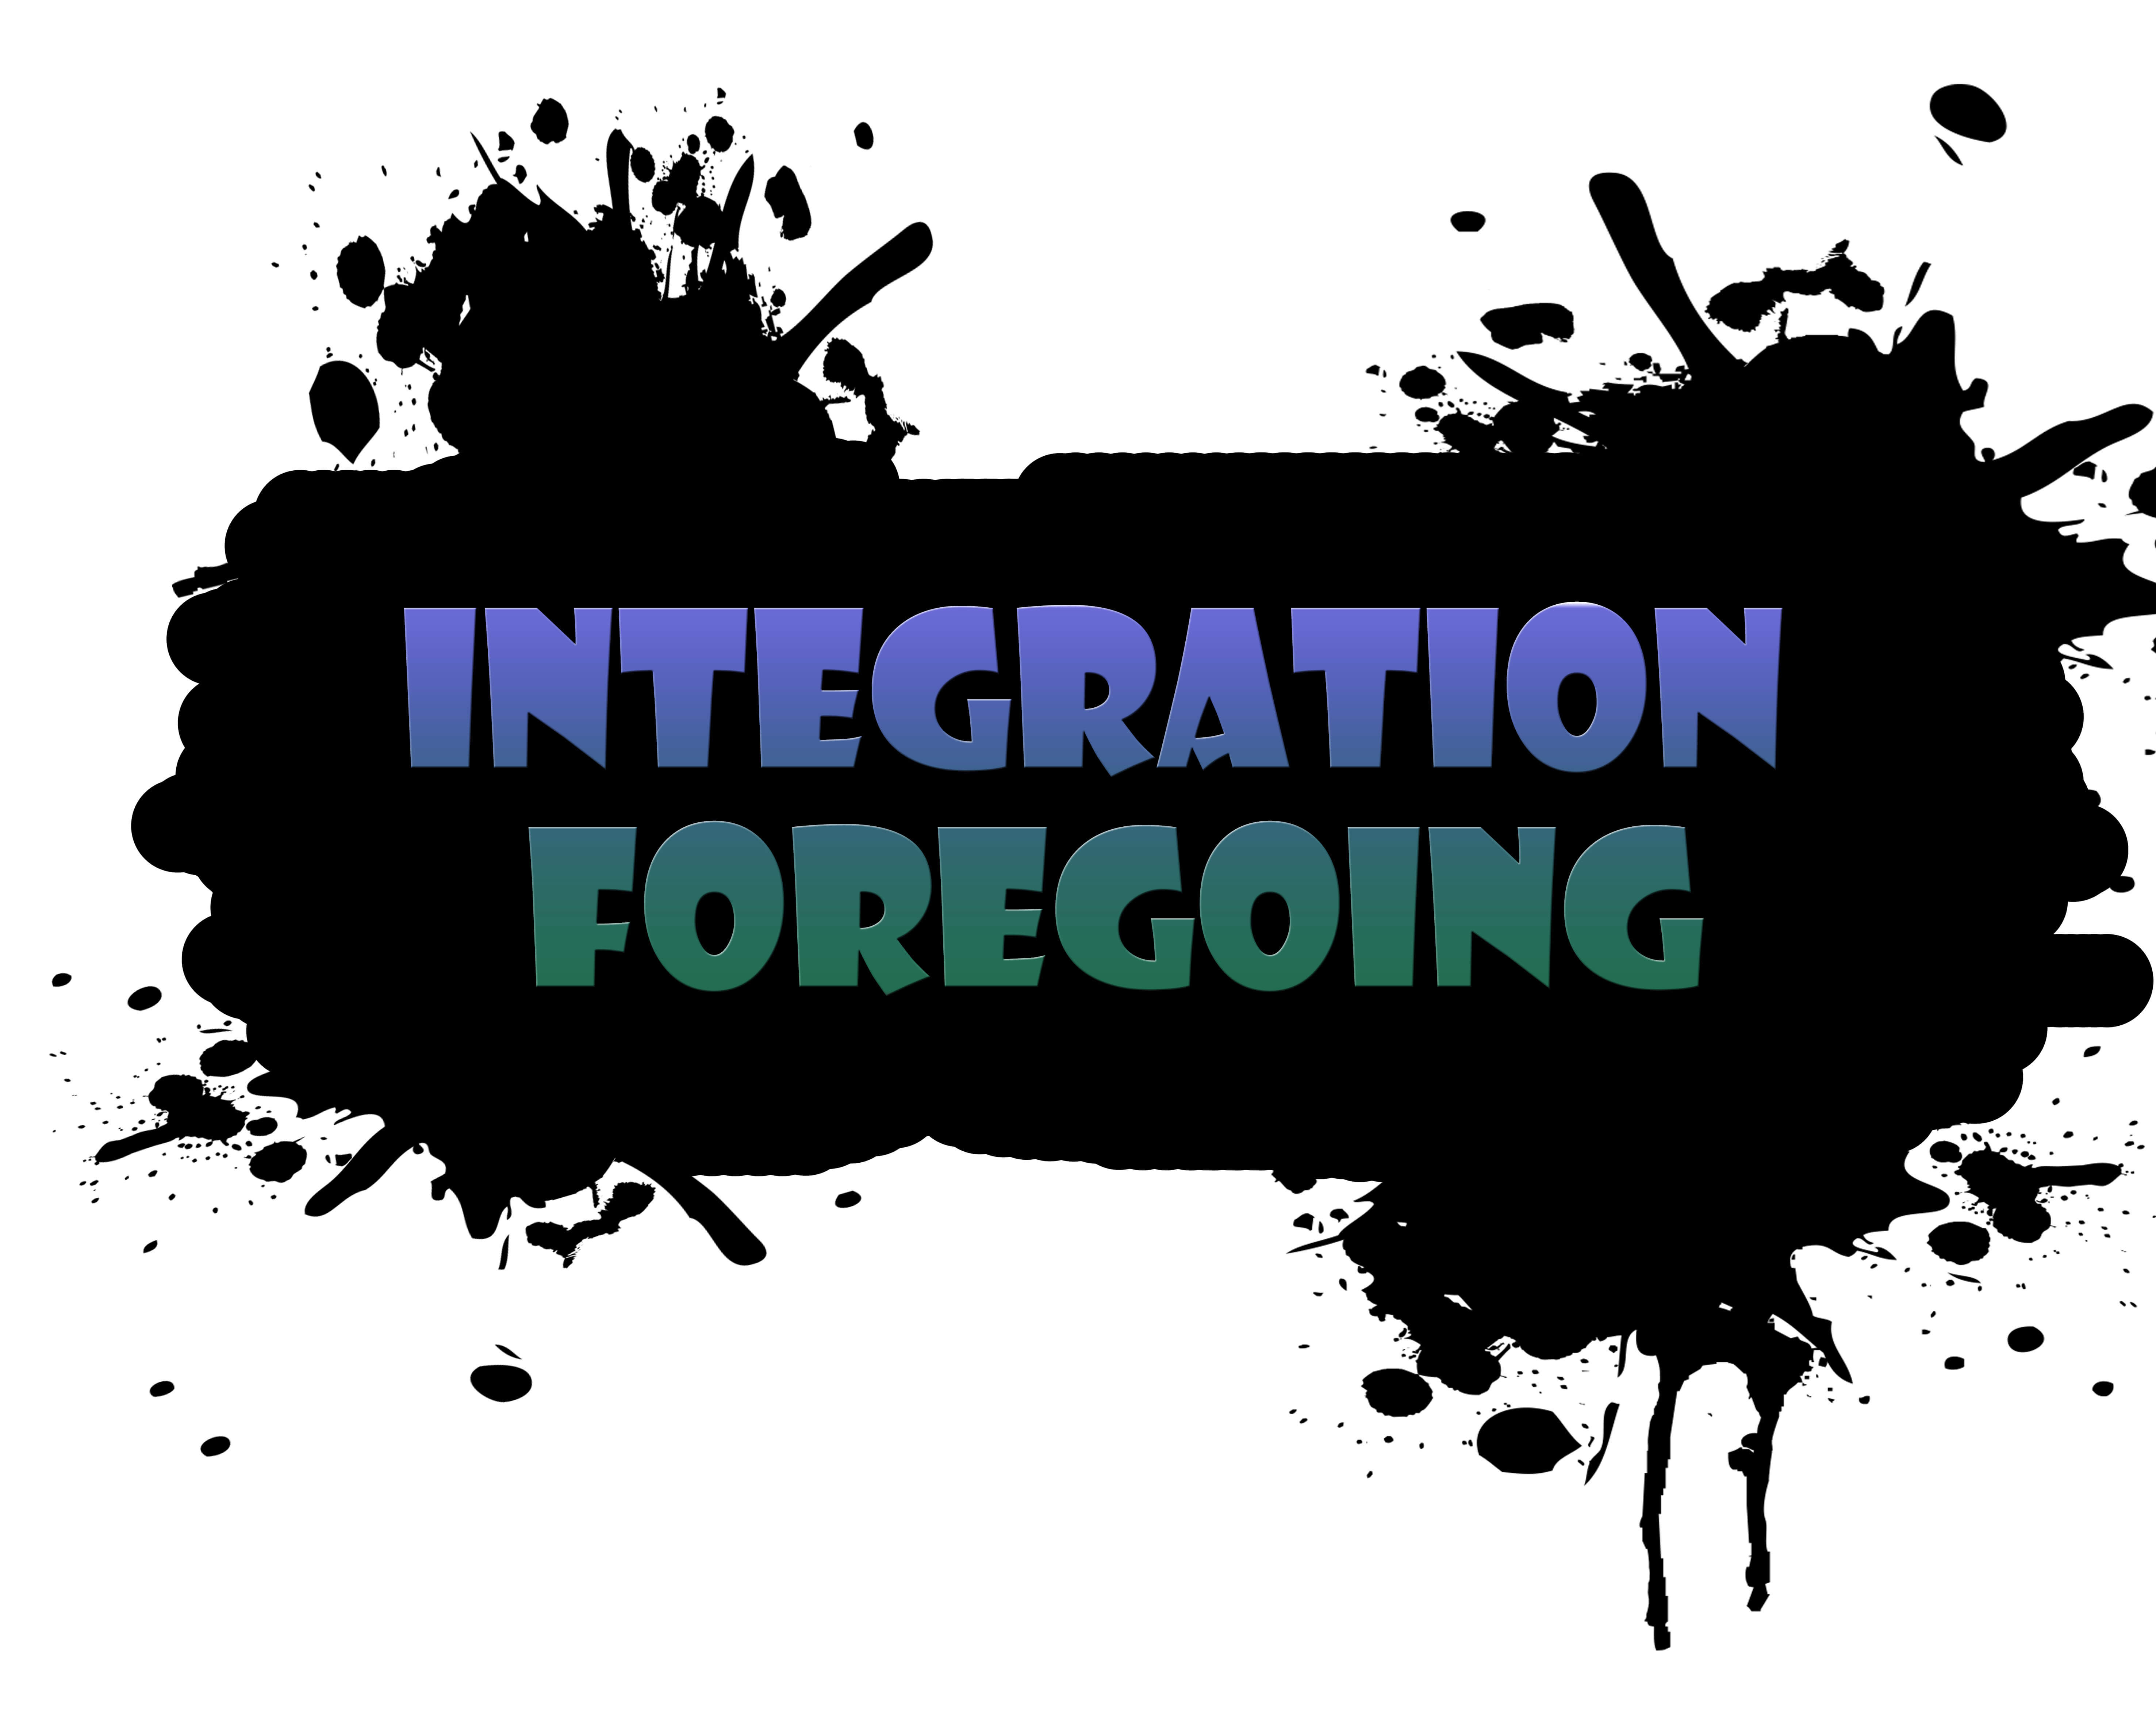 Integration Foregoing скриншот 1